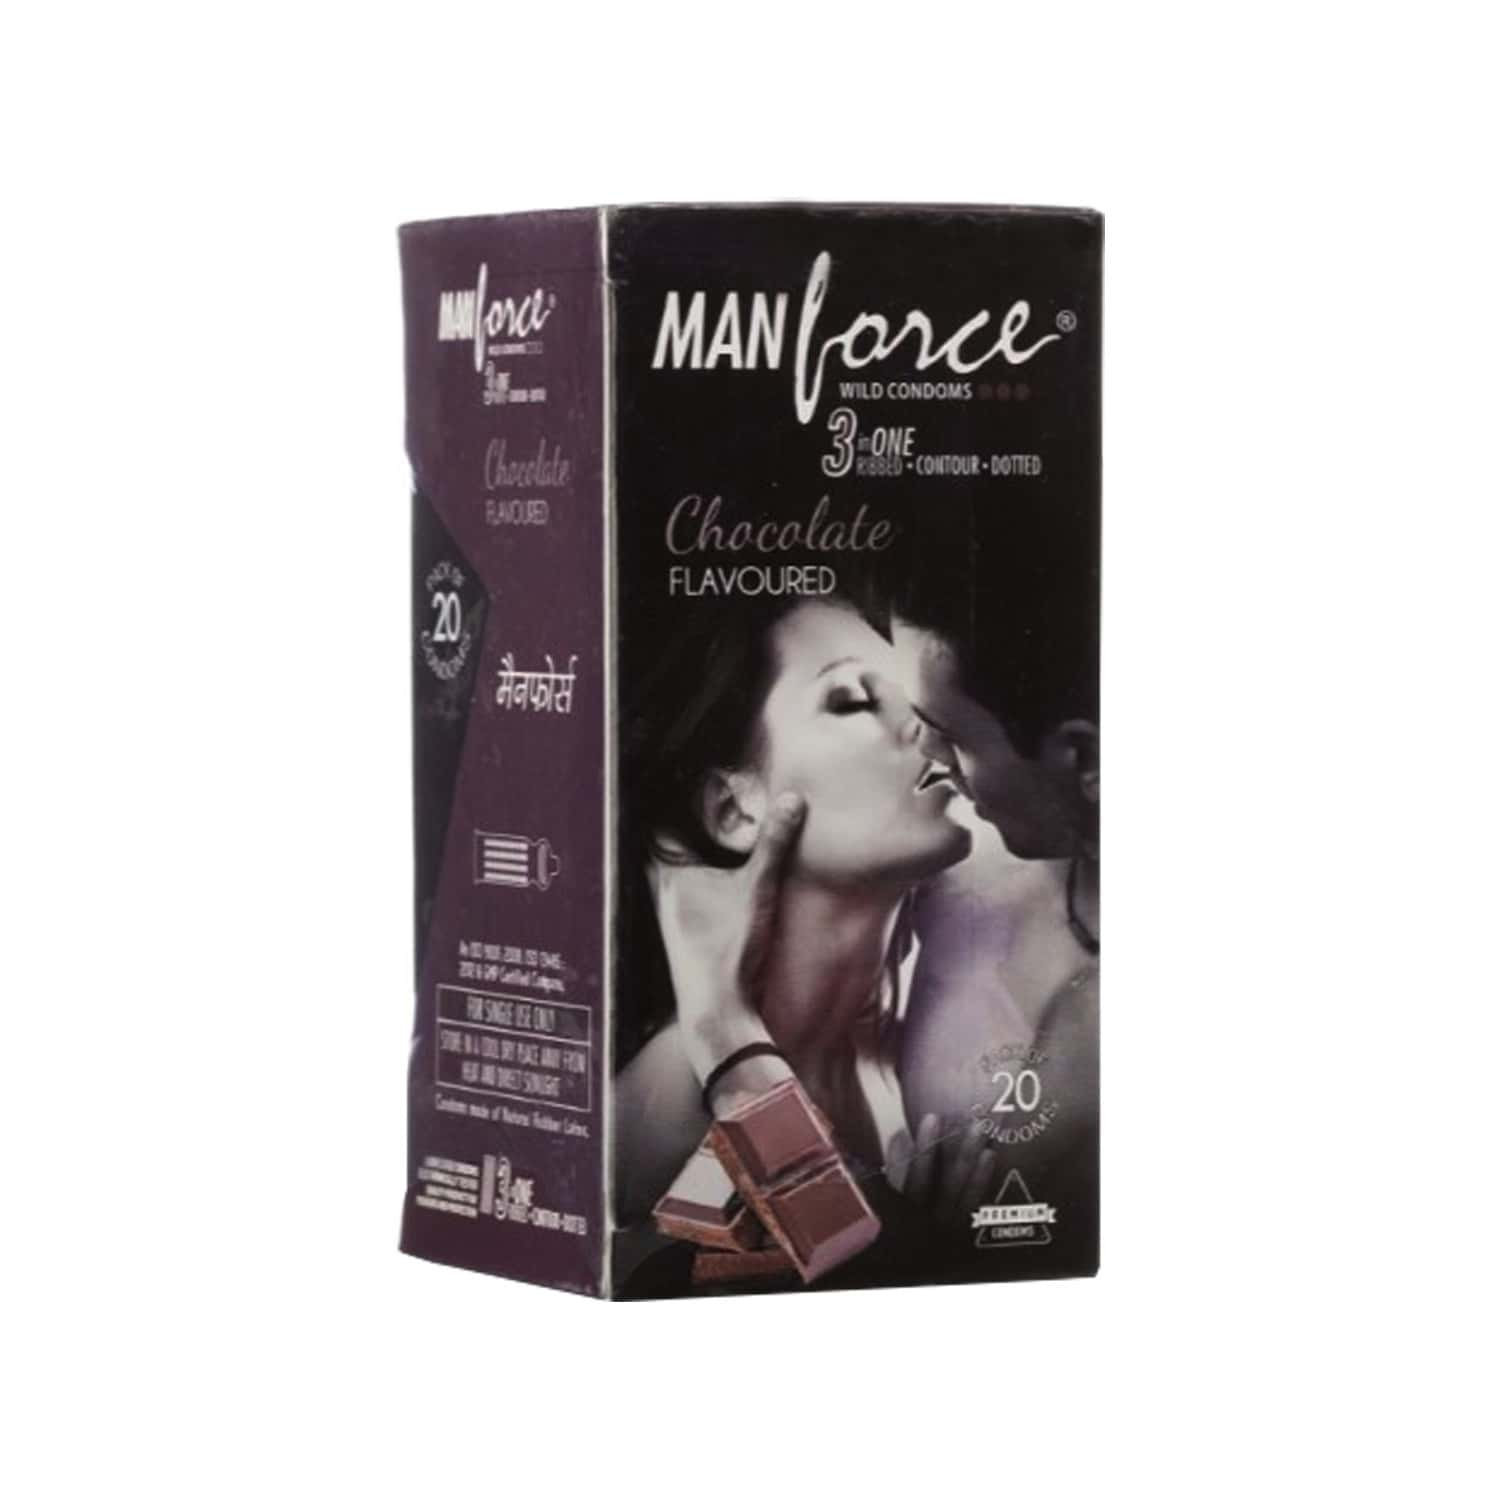 Manforce Wild Chocolate Box Of 20 Condoms